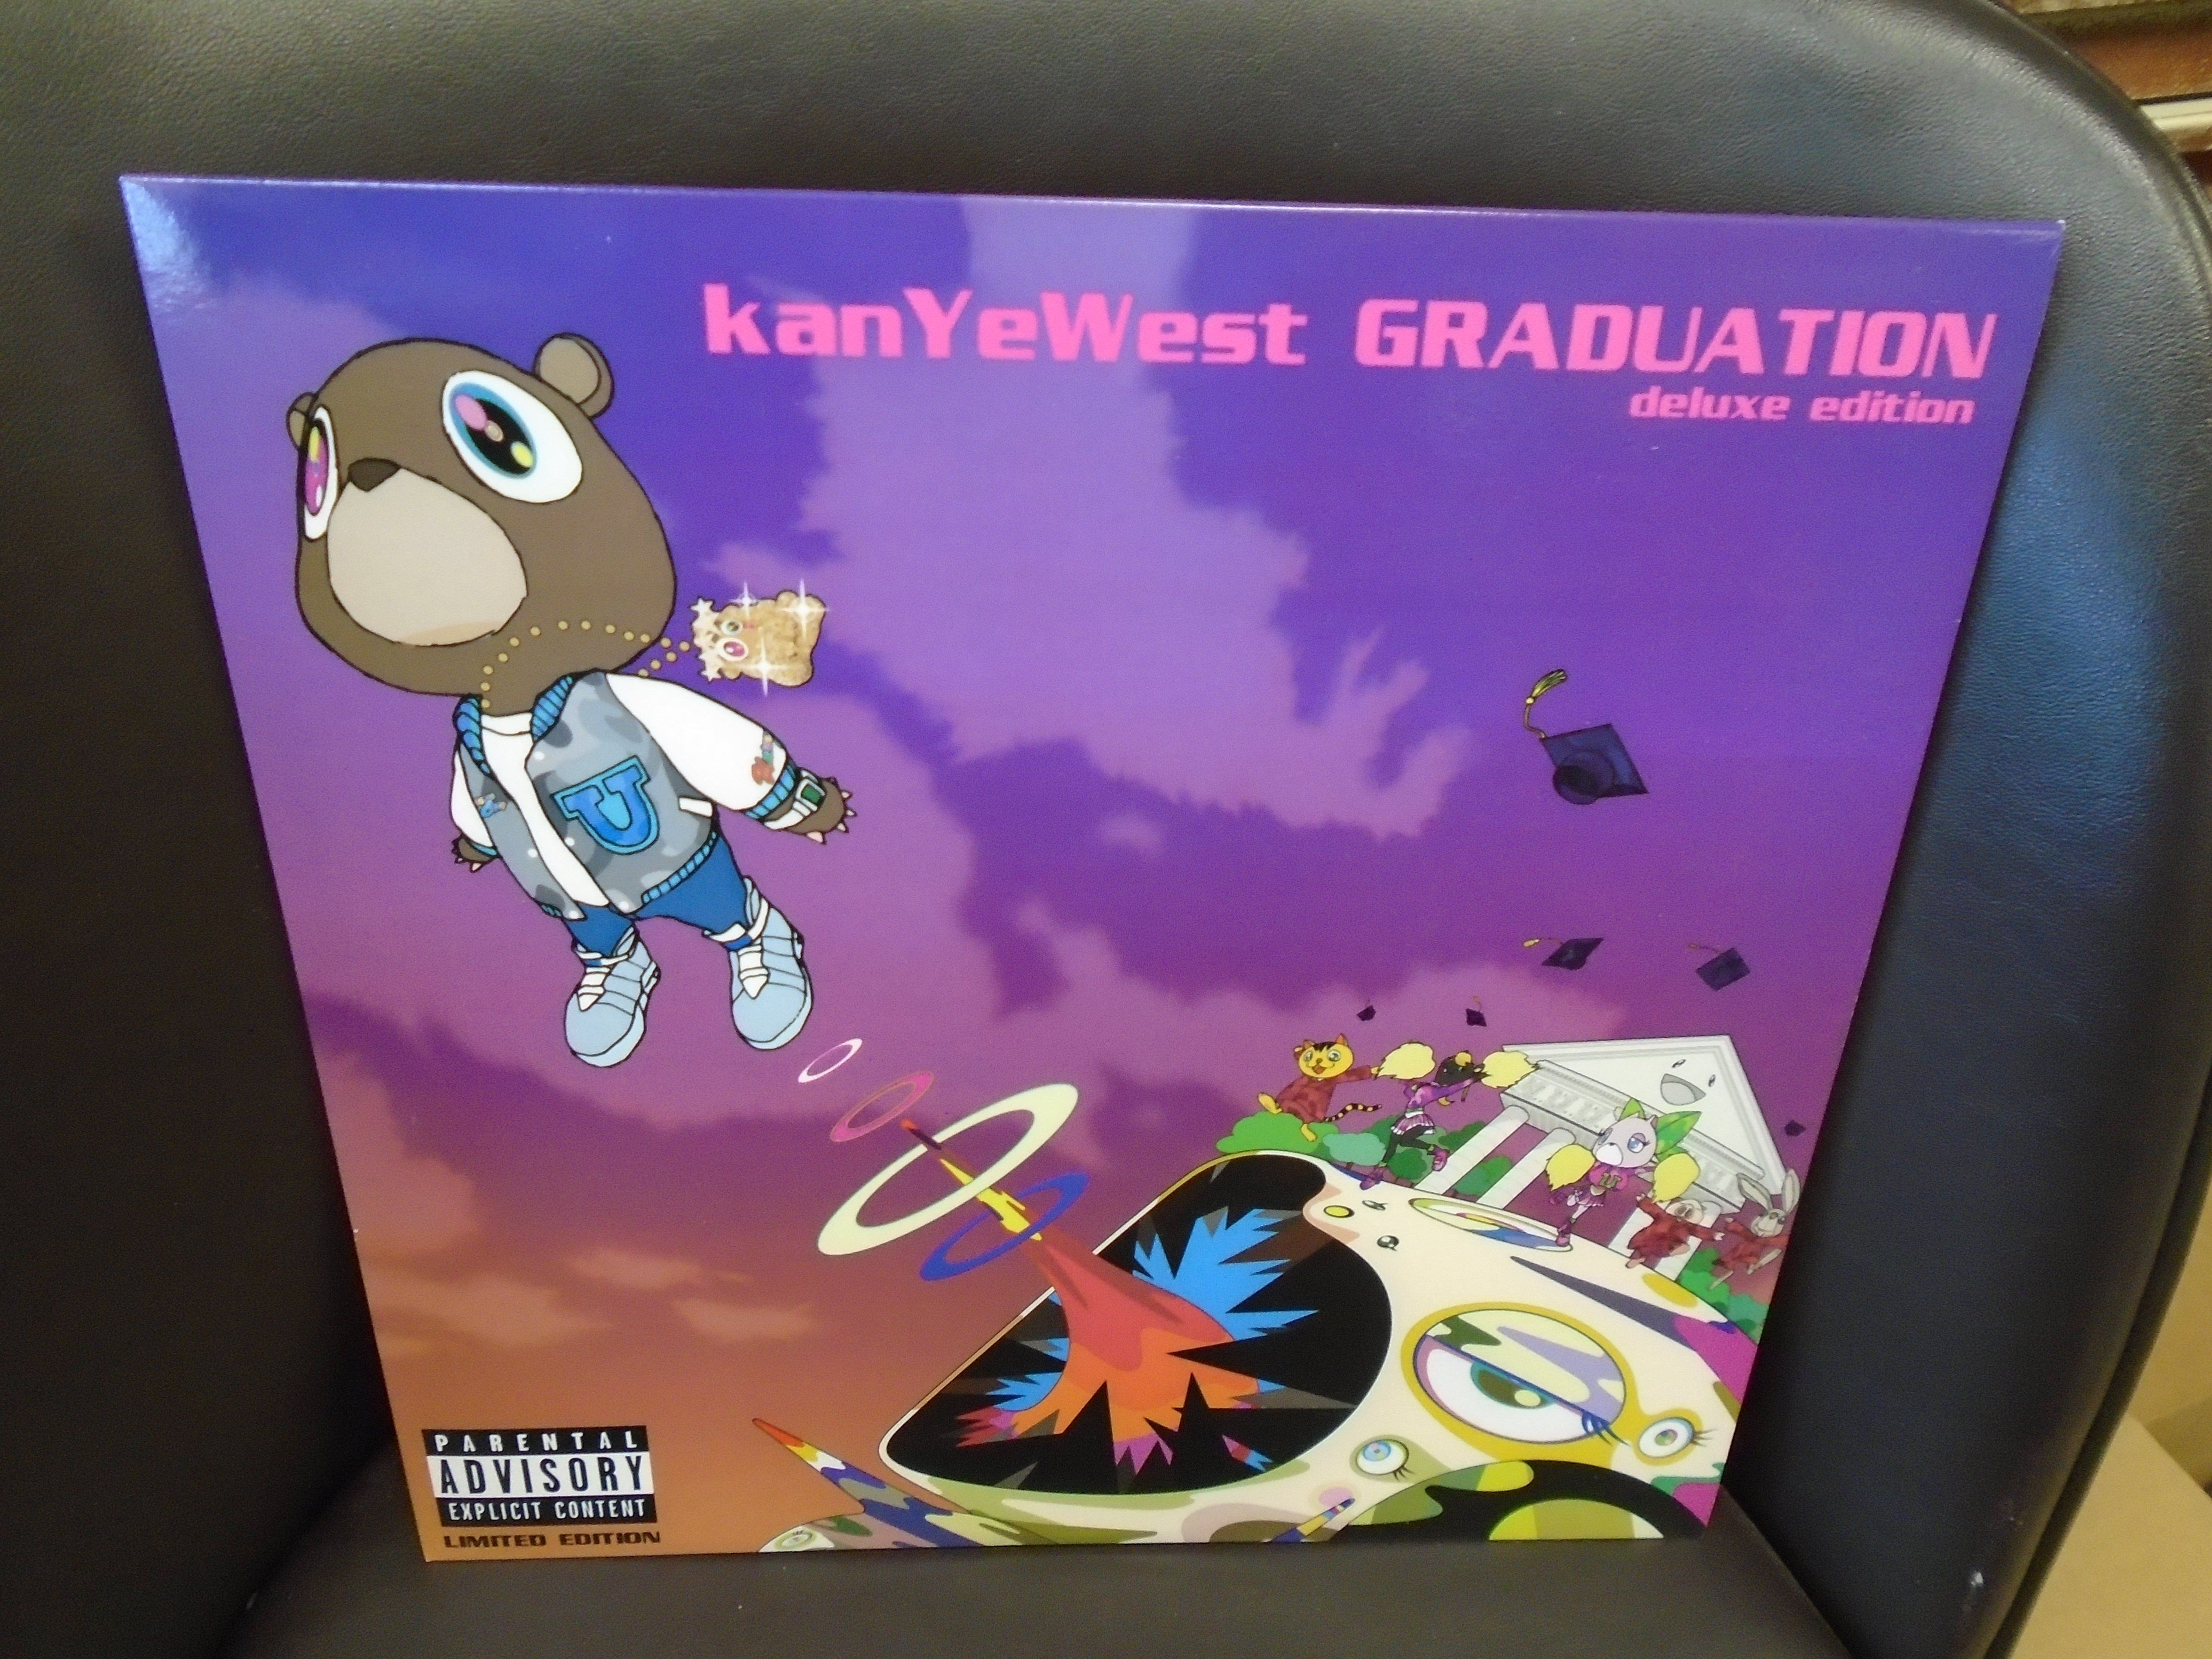 Kanye West Graduation 2x Lp New Clear Clear Pink Colored Vinyl Kanye West Graduation Kanye West Kanye